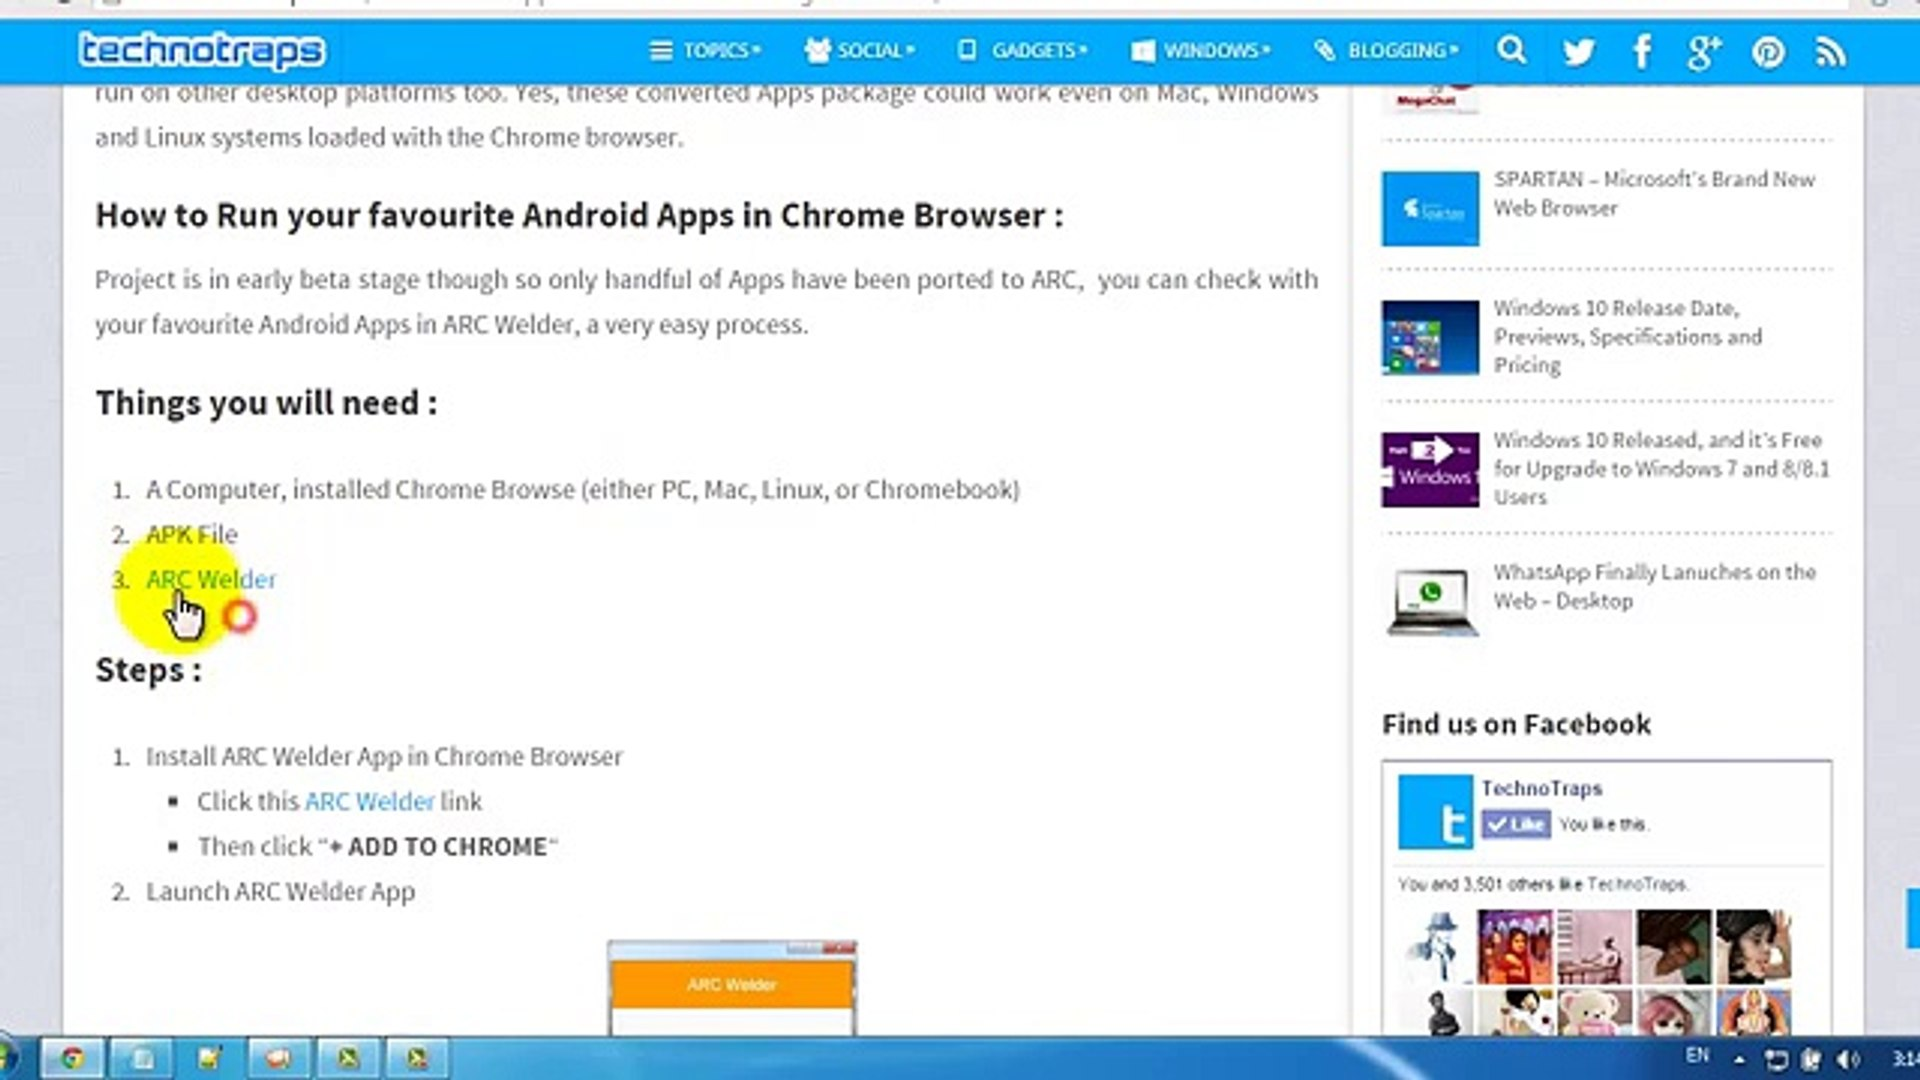 How to Run Android Apps in Chrome Browser Using ARC Welder